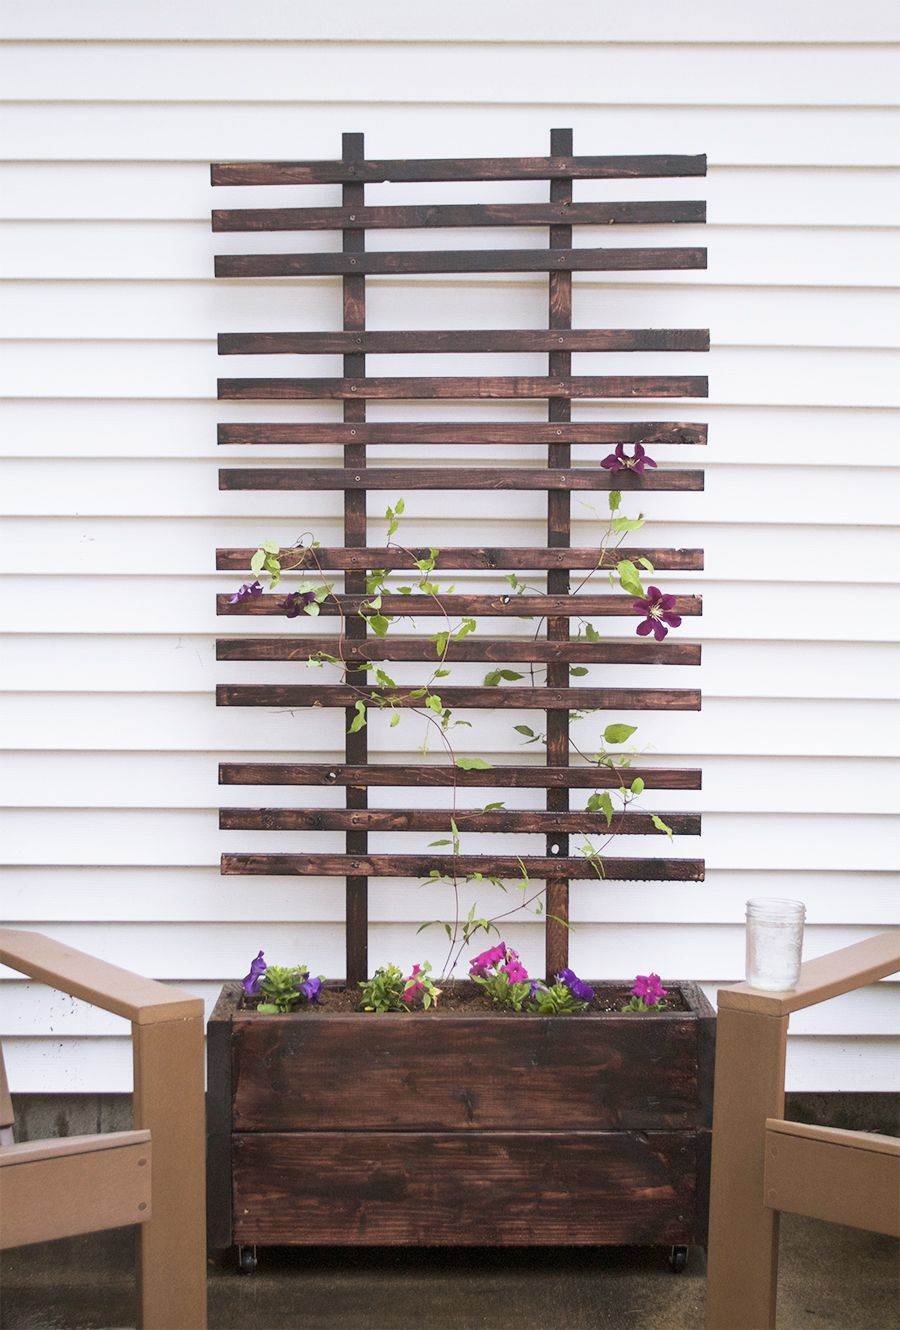 Diy Trellis Planter Box Tutorial Giveaway Deuce Cities Henhouse Diy Trellis Planter Trellis Diy Garden Trellis